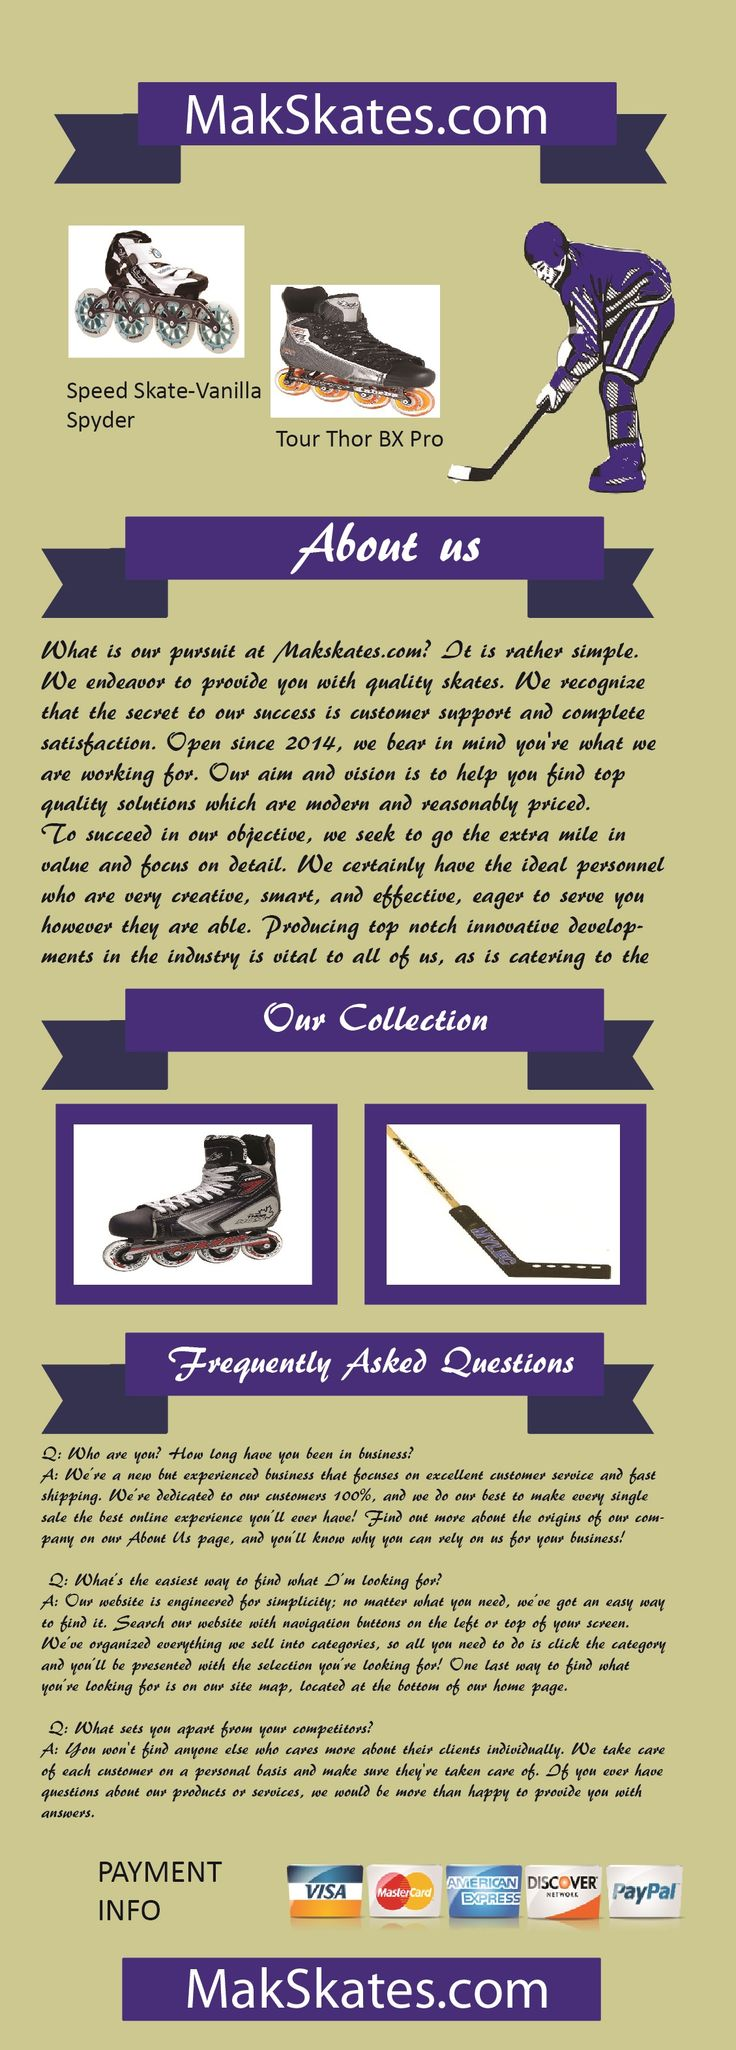 Cheap Hockey Equipments For Sale. Have everything you need for your hockey playing experience with our assortment of cheap hockey sticks. Find the perfect hockey stick for you!